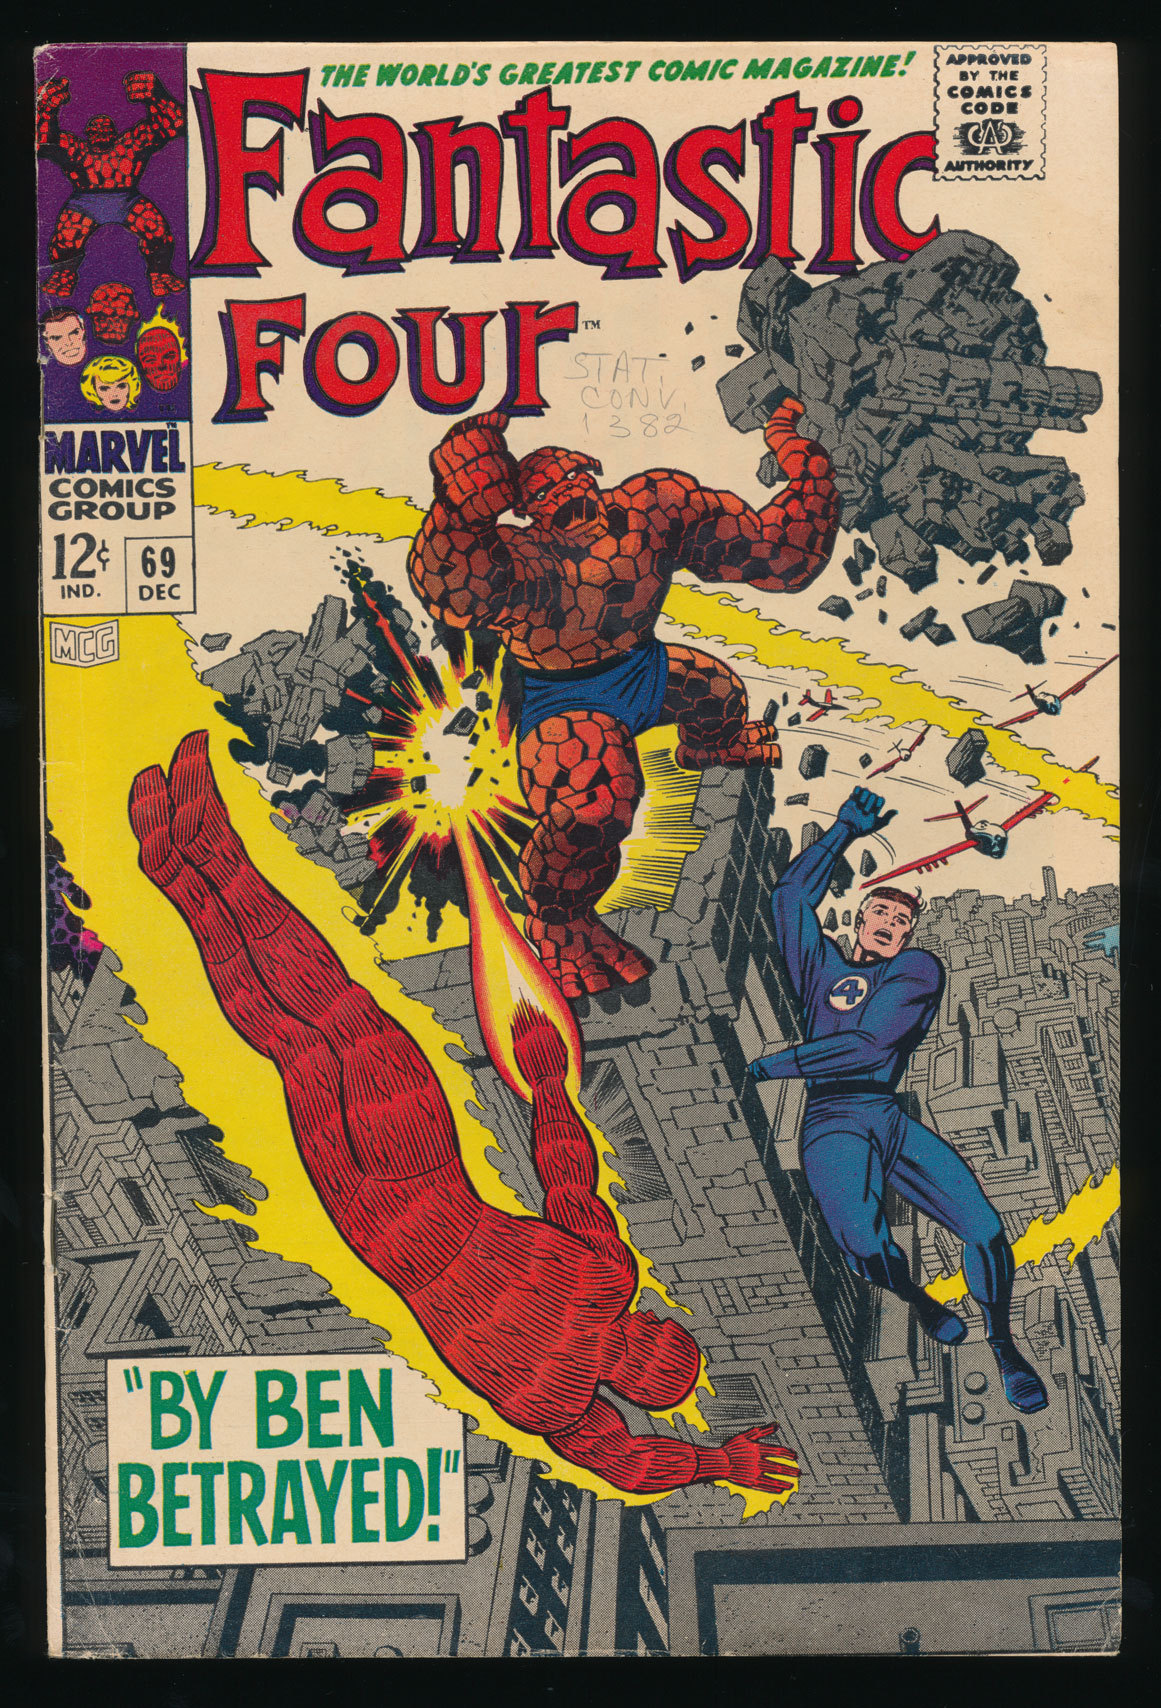 Fantastic Four #69(Dec. 1967)